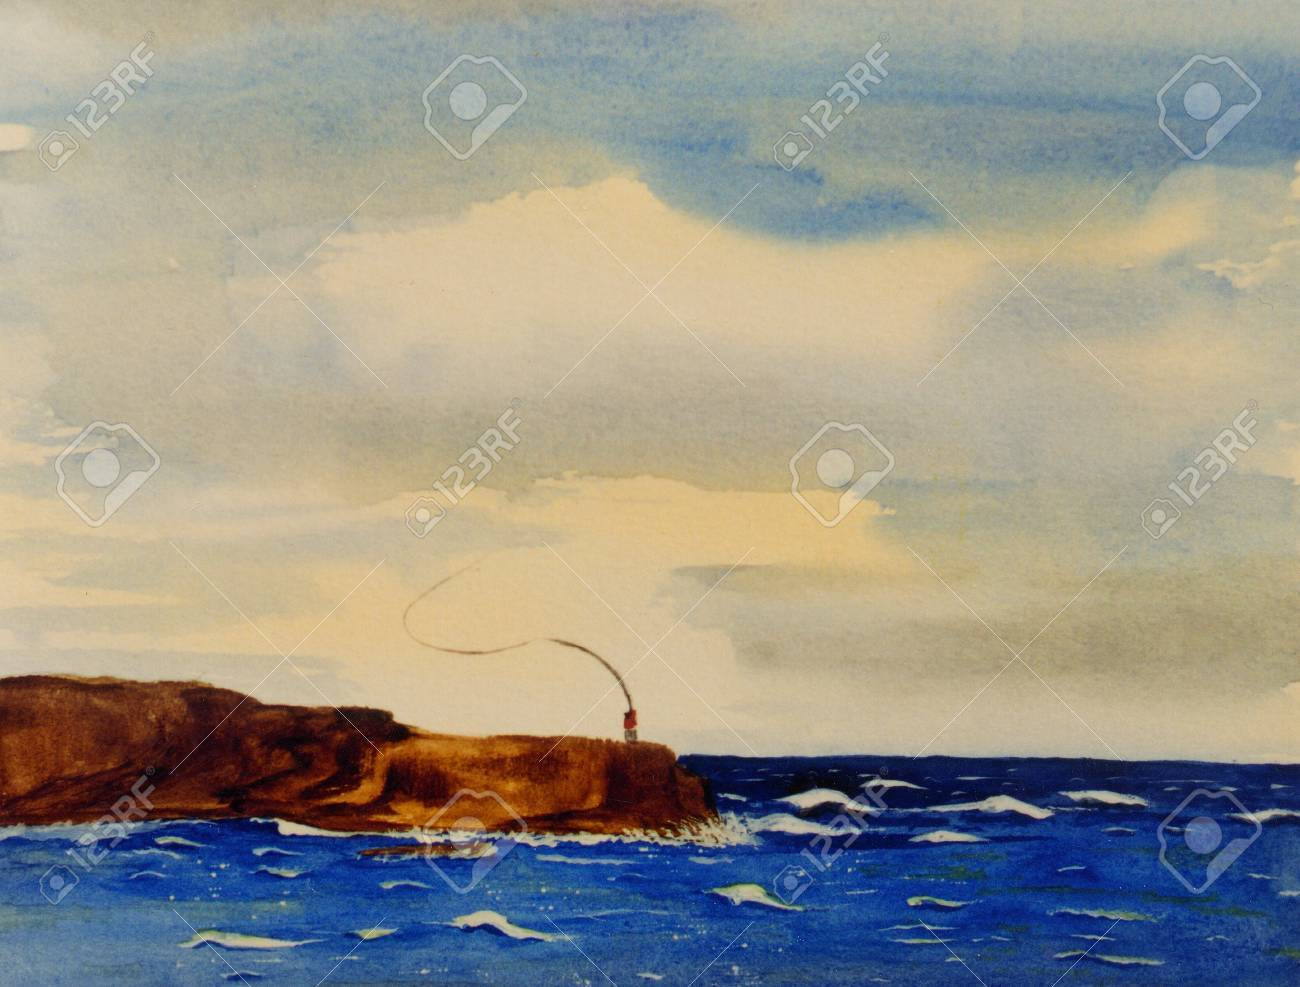 Nice Simple Watercolor Painting Of A Fisherman